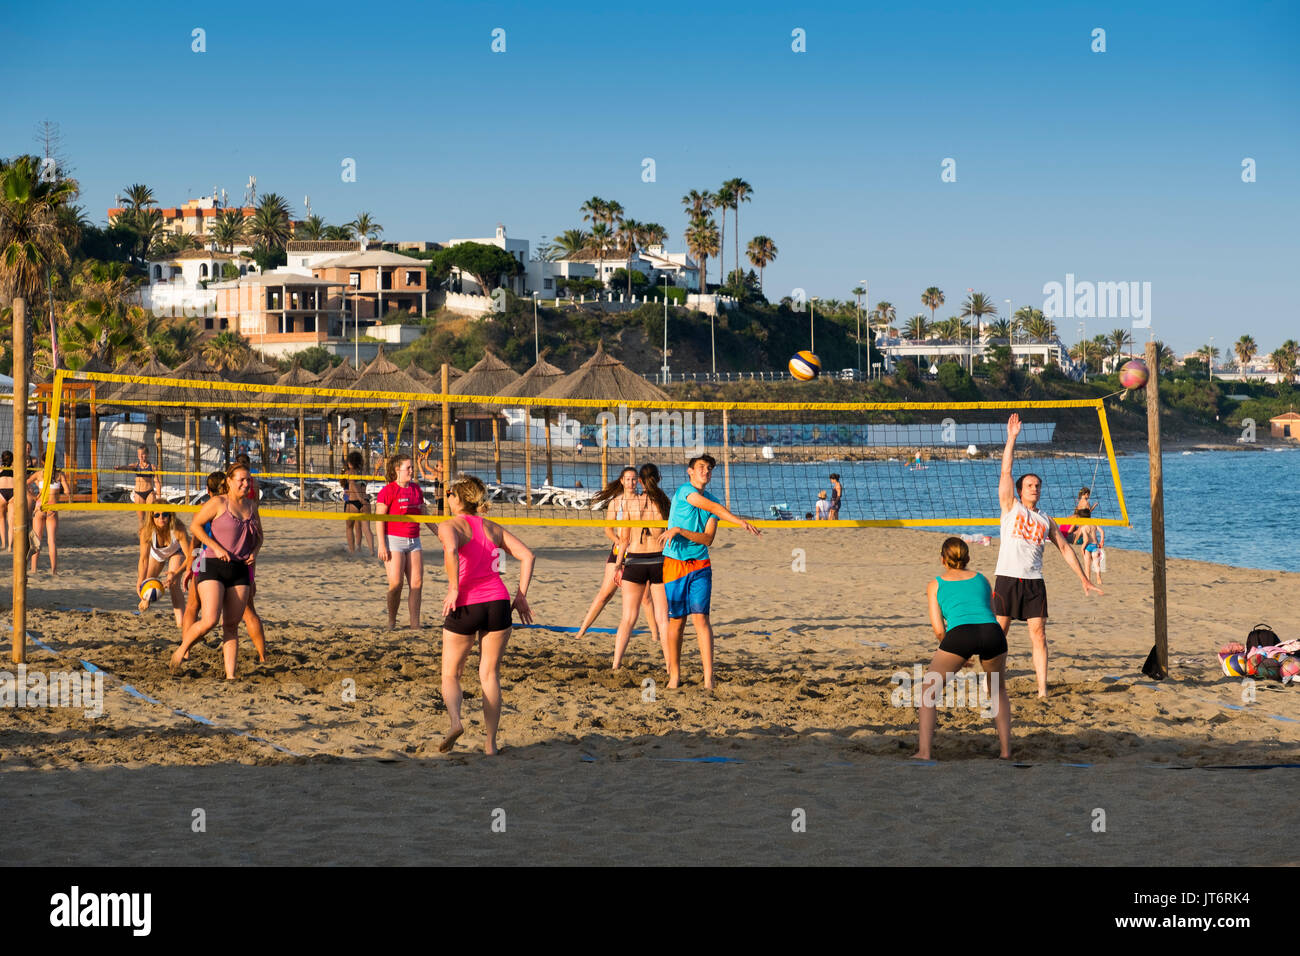 Playing volleyball at the beach, La Cala de Mijas. Costa del Sol, Málaga province. Andalusia, Southern Spain Europe - Stock Image